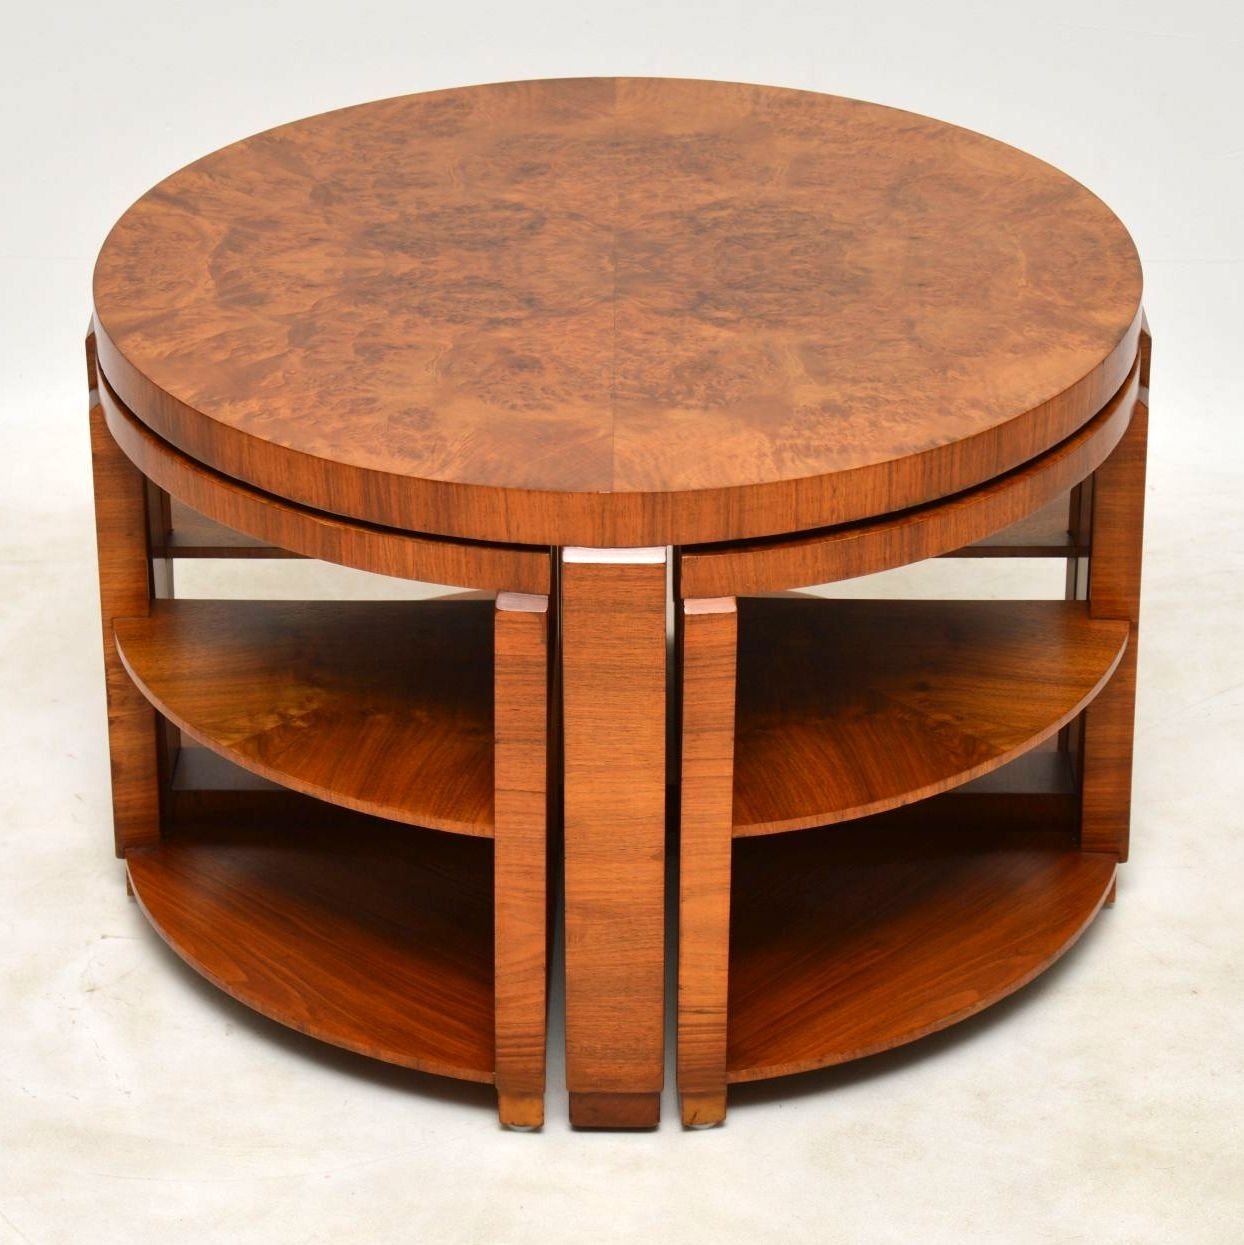 1920's Art Deco Burr Walnut Nesting Coffee Table | Interior for Antiqued Art Deco Coffee Tables (Image 1 of 30)